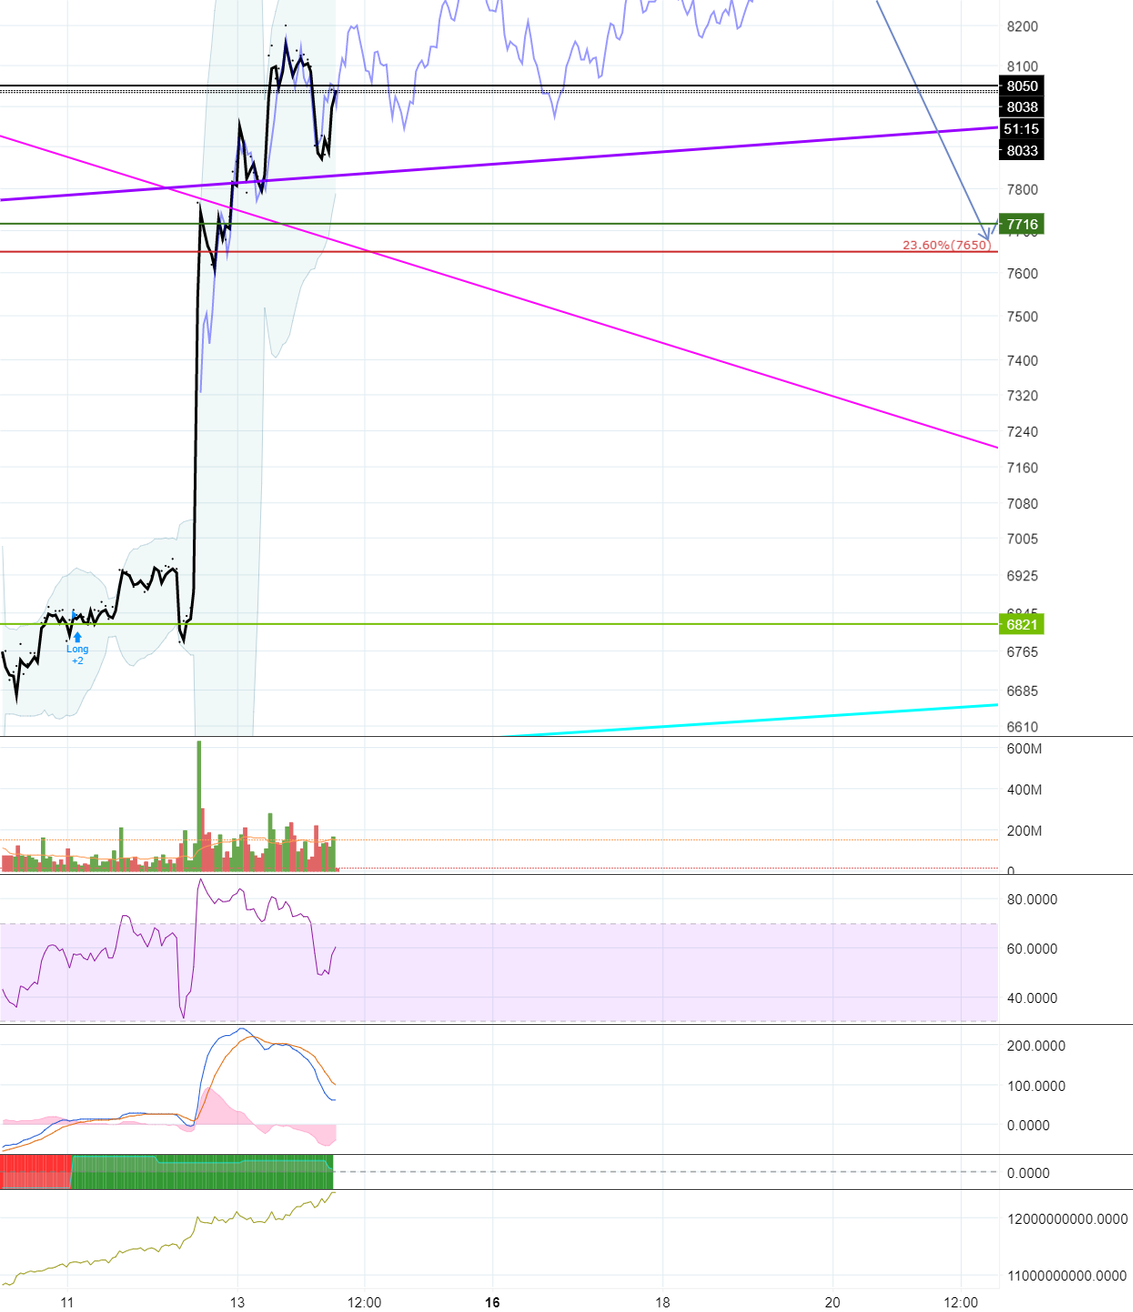 Feb 6k low overlapped chart, working good so far!